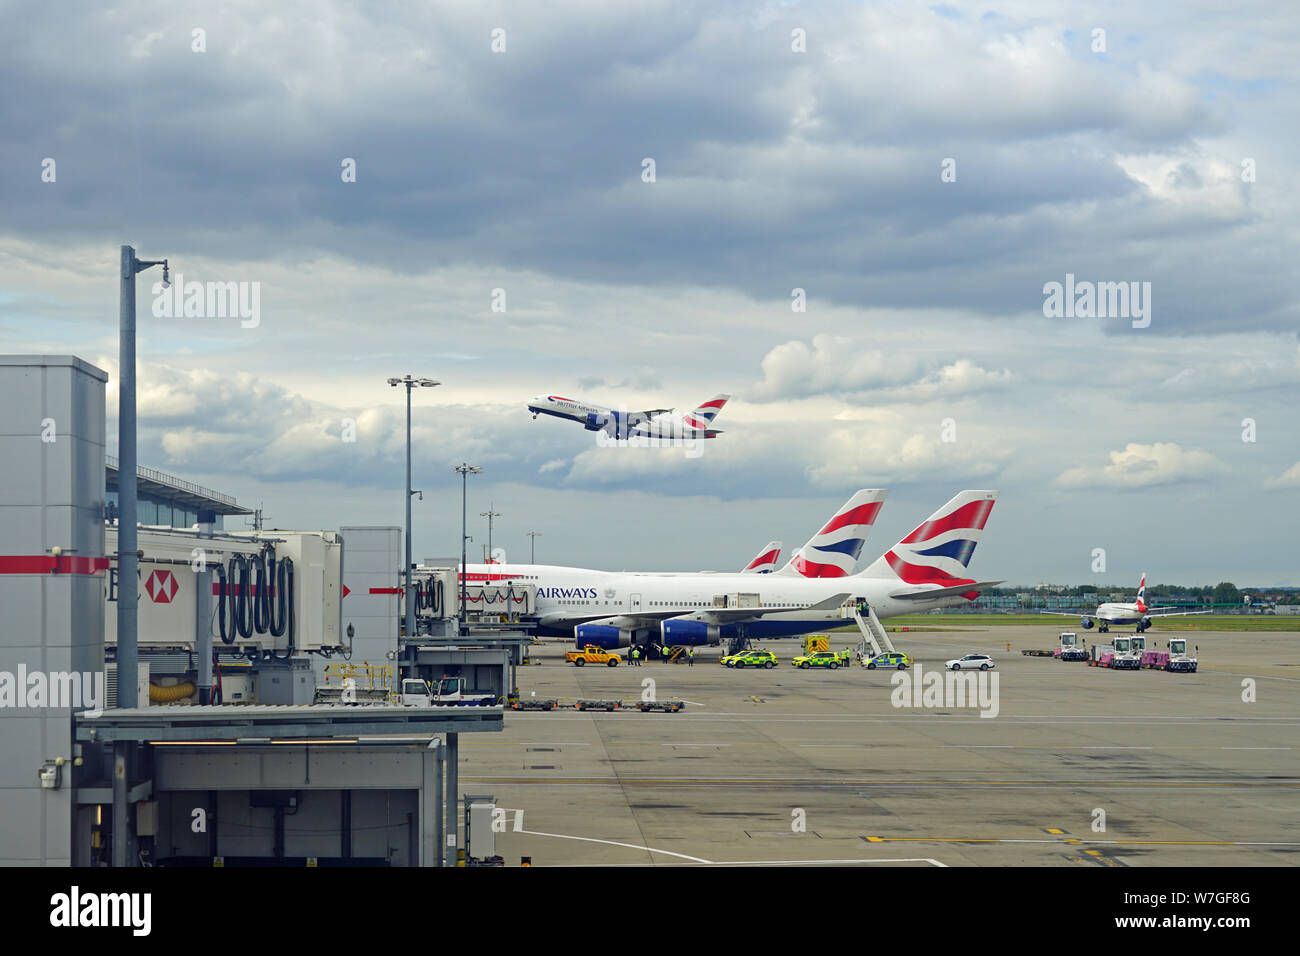 HEATHROW, ENGLAND -28 JUL 2019- View of an airplane from British Airways (BA) taking off at London Heathrow Airport (LHR), the main airport in London. Stock Photo